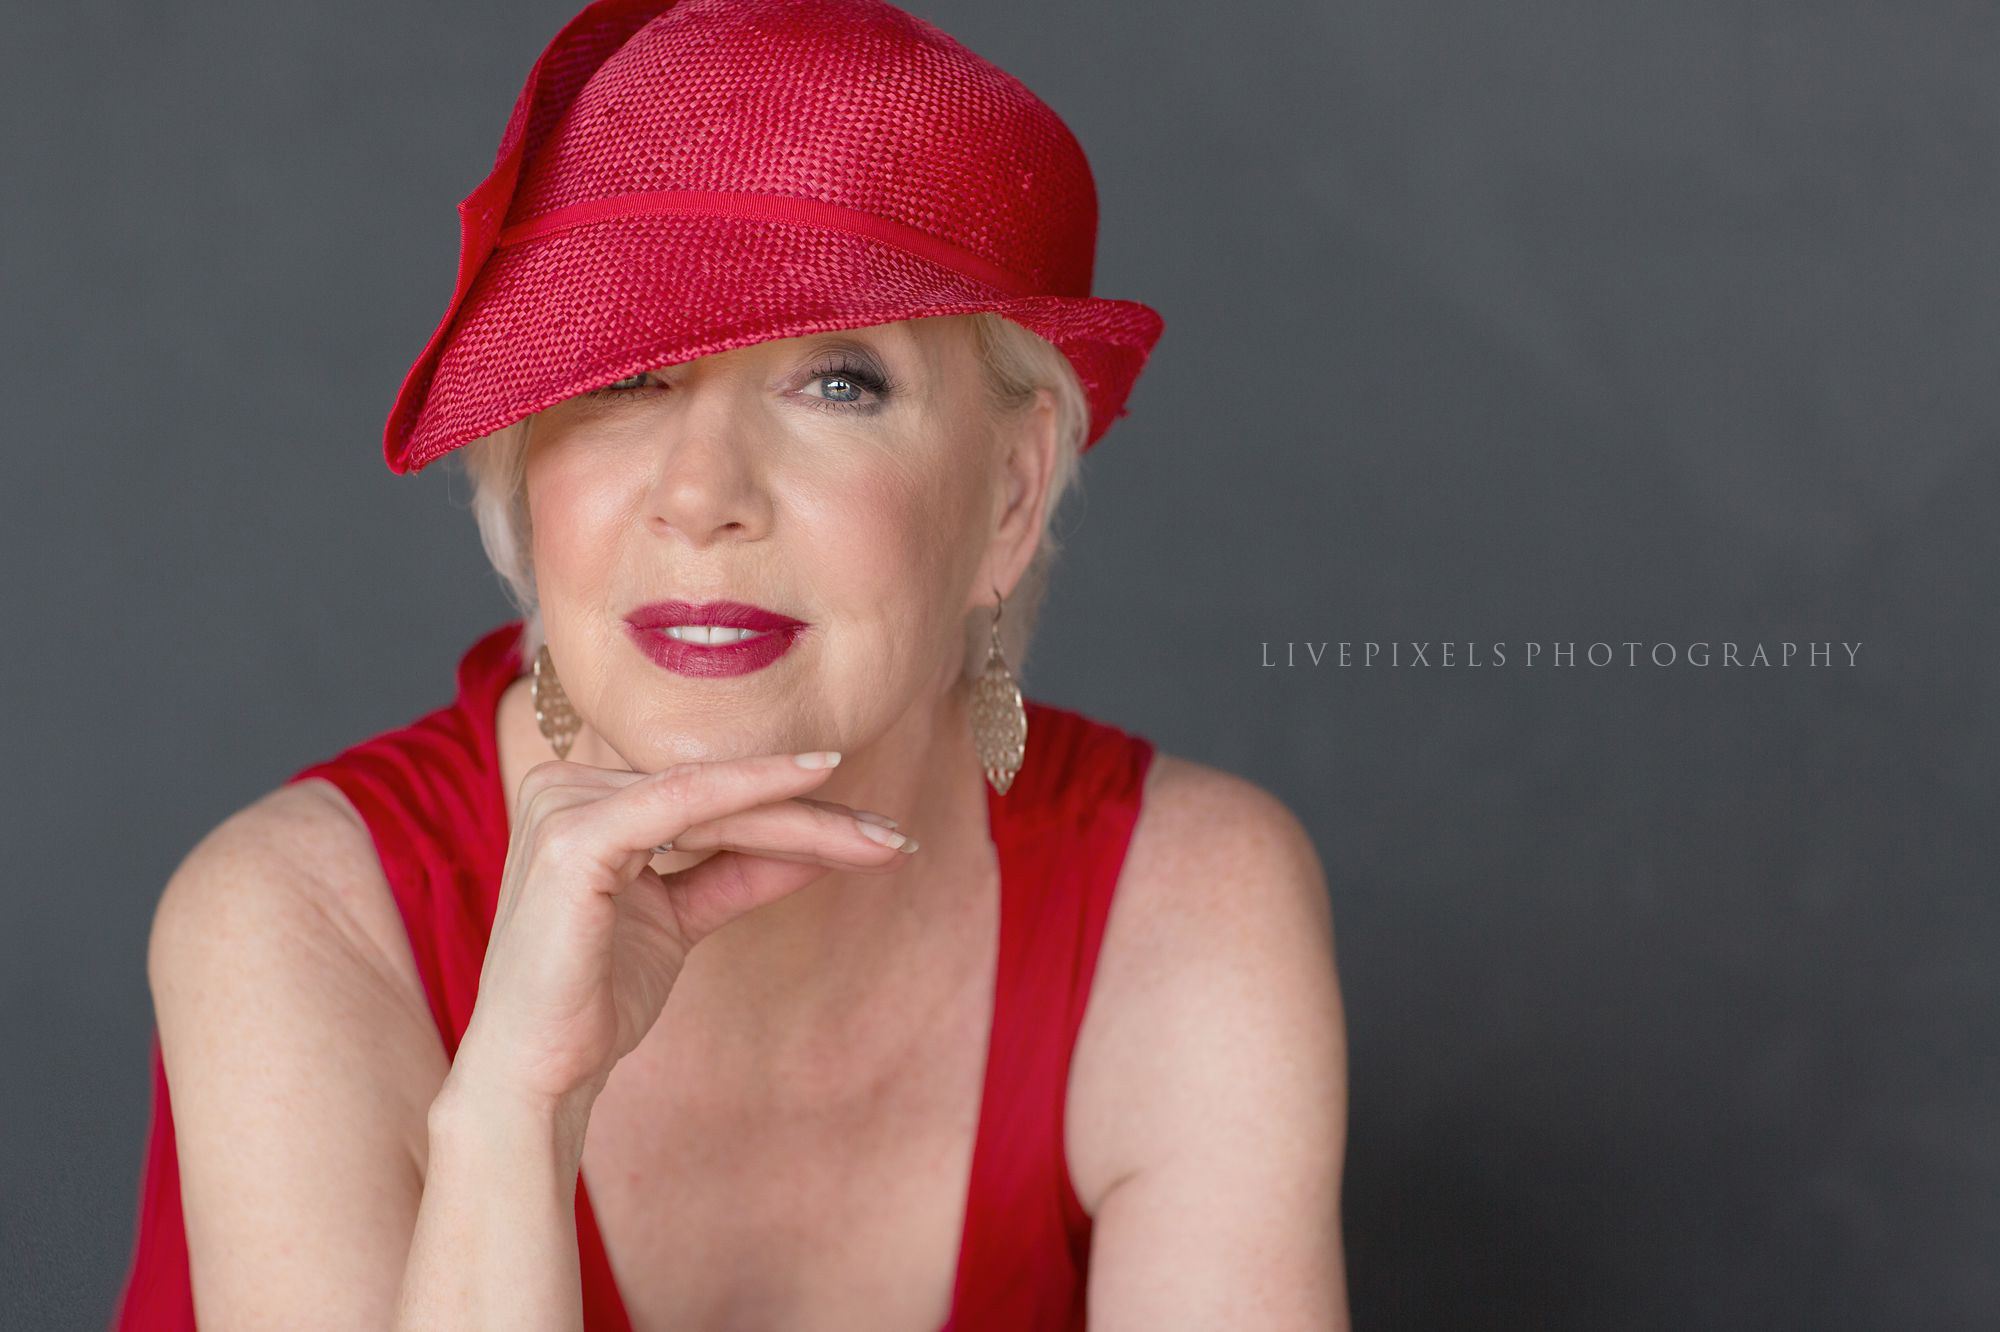 Women over 60 Beauty Portraits, glamour studio portrait - Livepixels Photography, Toronto / livepixelsphotography.com